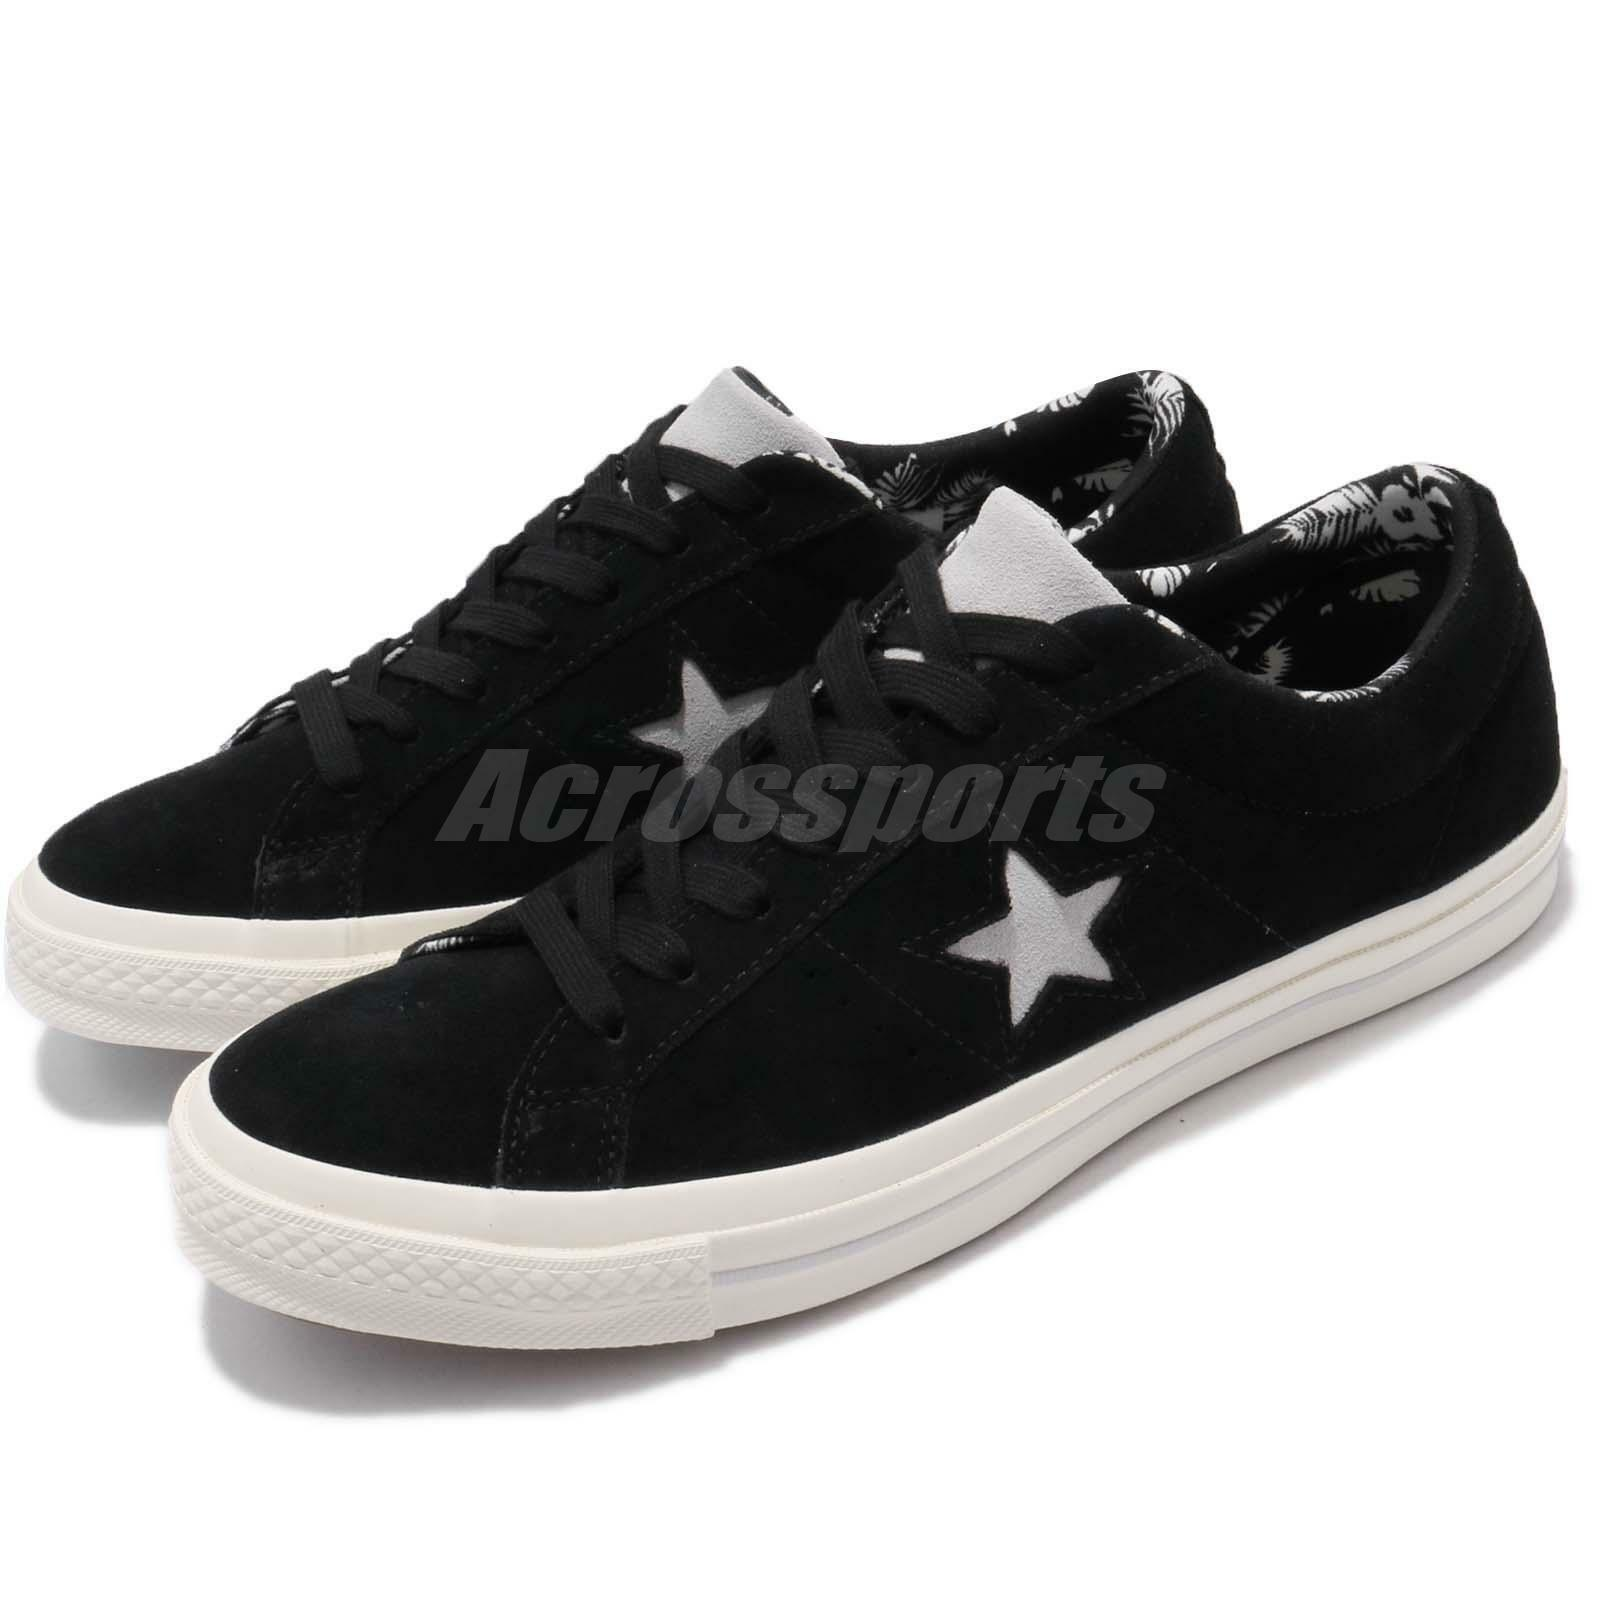 473f15f0f92dc Tropical Zapatos Negro Blanco Pies One 160584c Tenis Converse Star 5vwEnqwx0